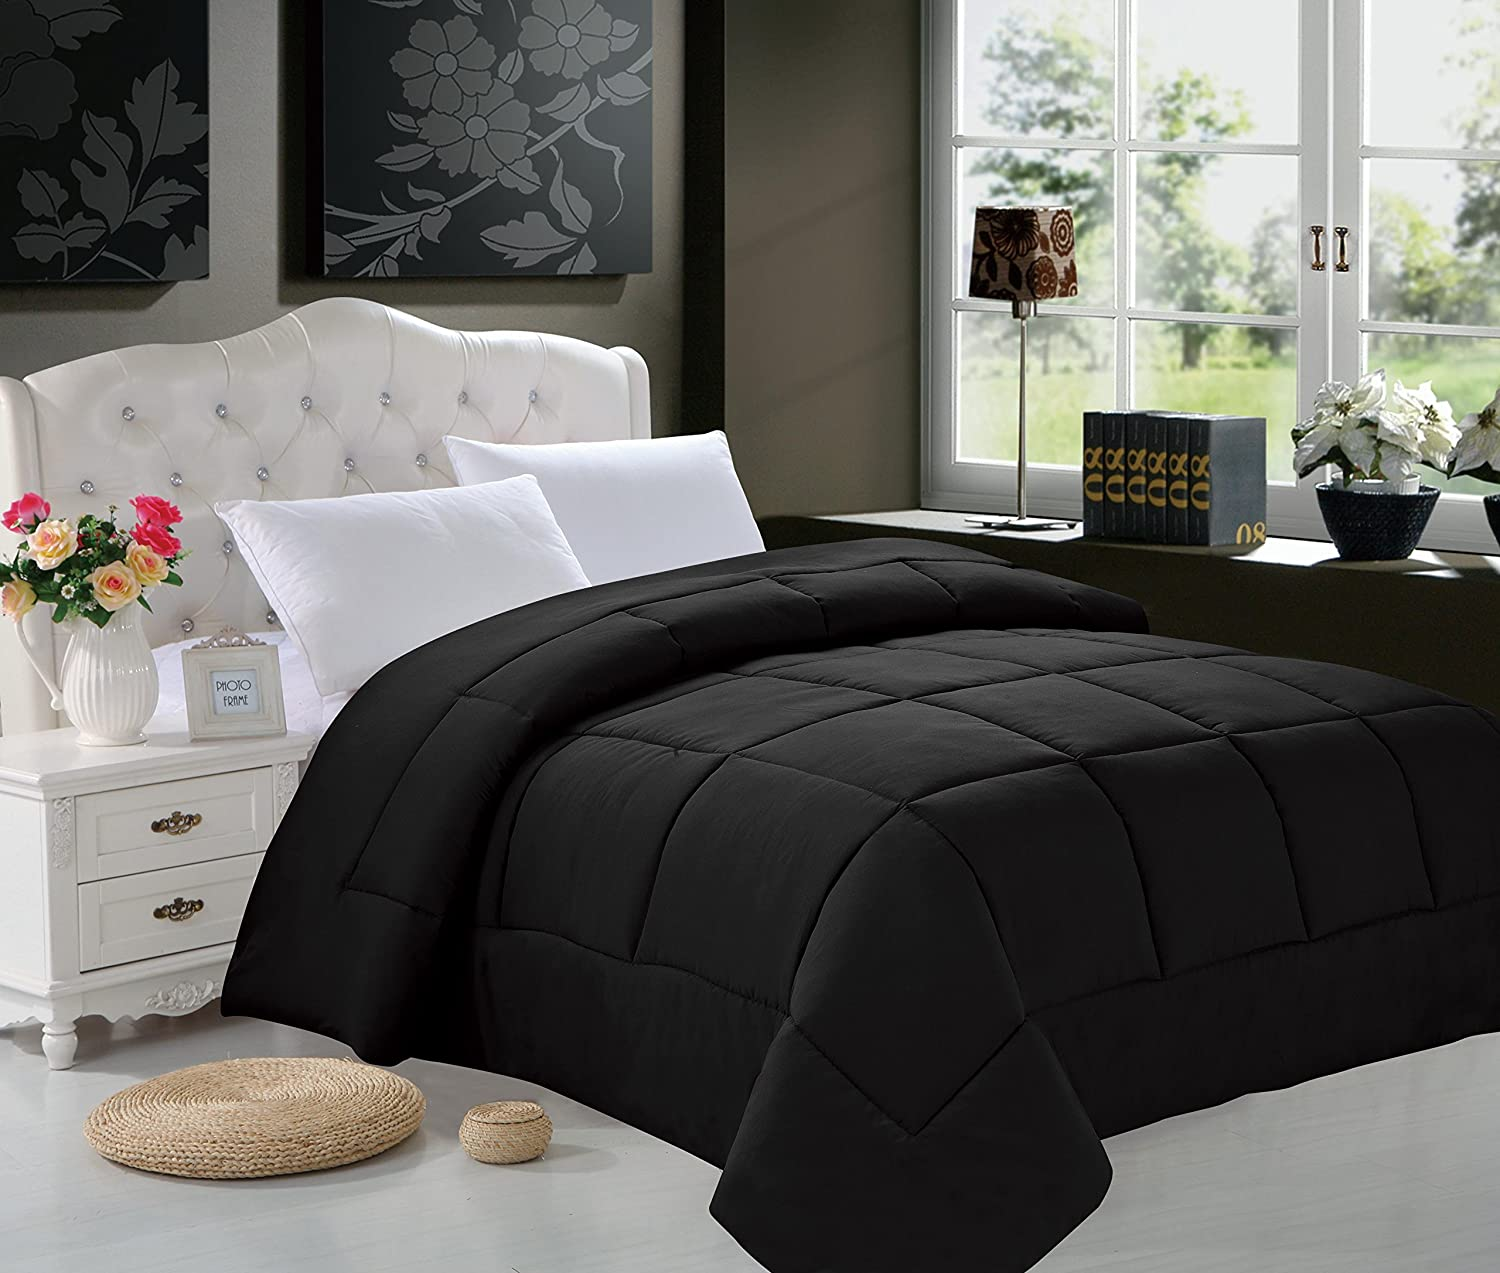 Elegant Comfort Luxury Down Alternative Over-Filled Comforter/Duvet Cover Insert Hypoallergenic, Twin, Black